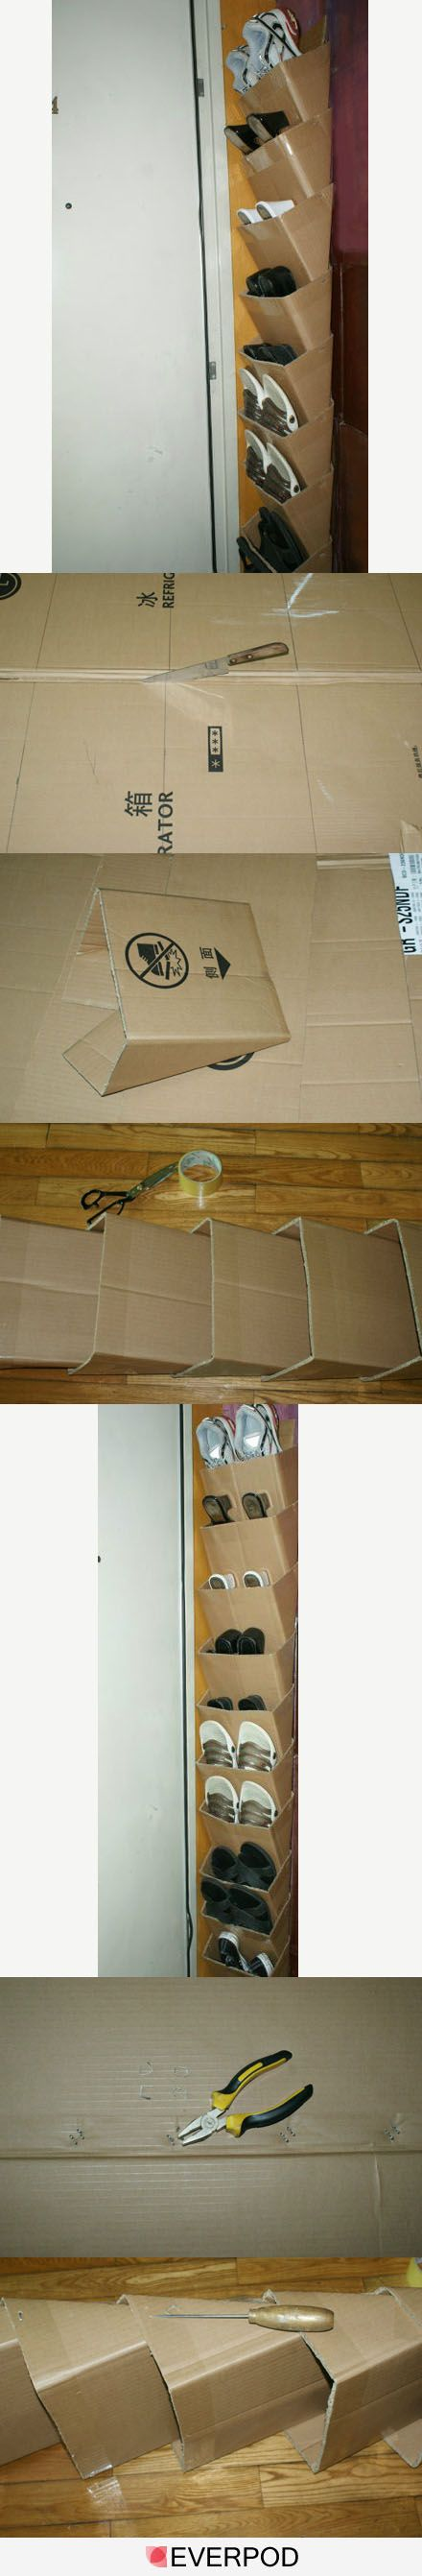 How To Make A Shoe Rack Best 25 Diy Shoe Organizer Ideas Only On Pinterest Shoe